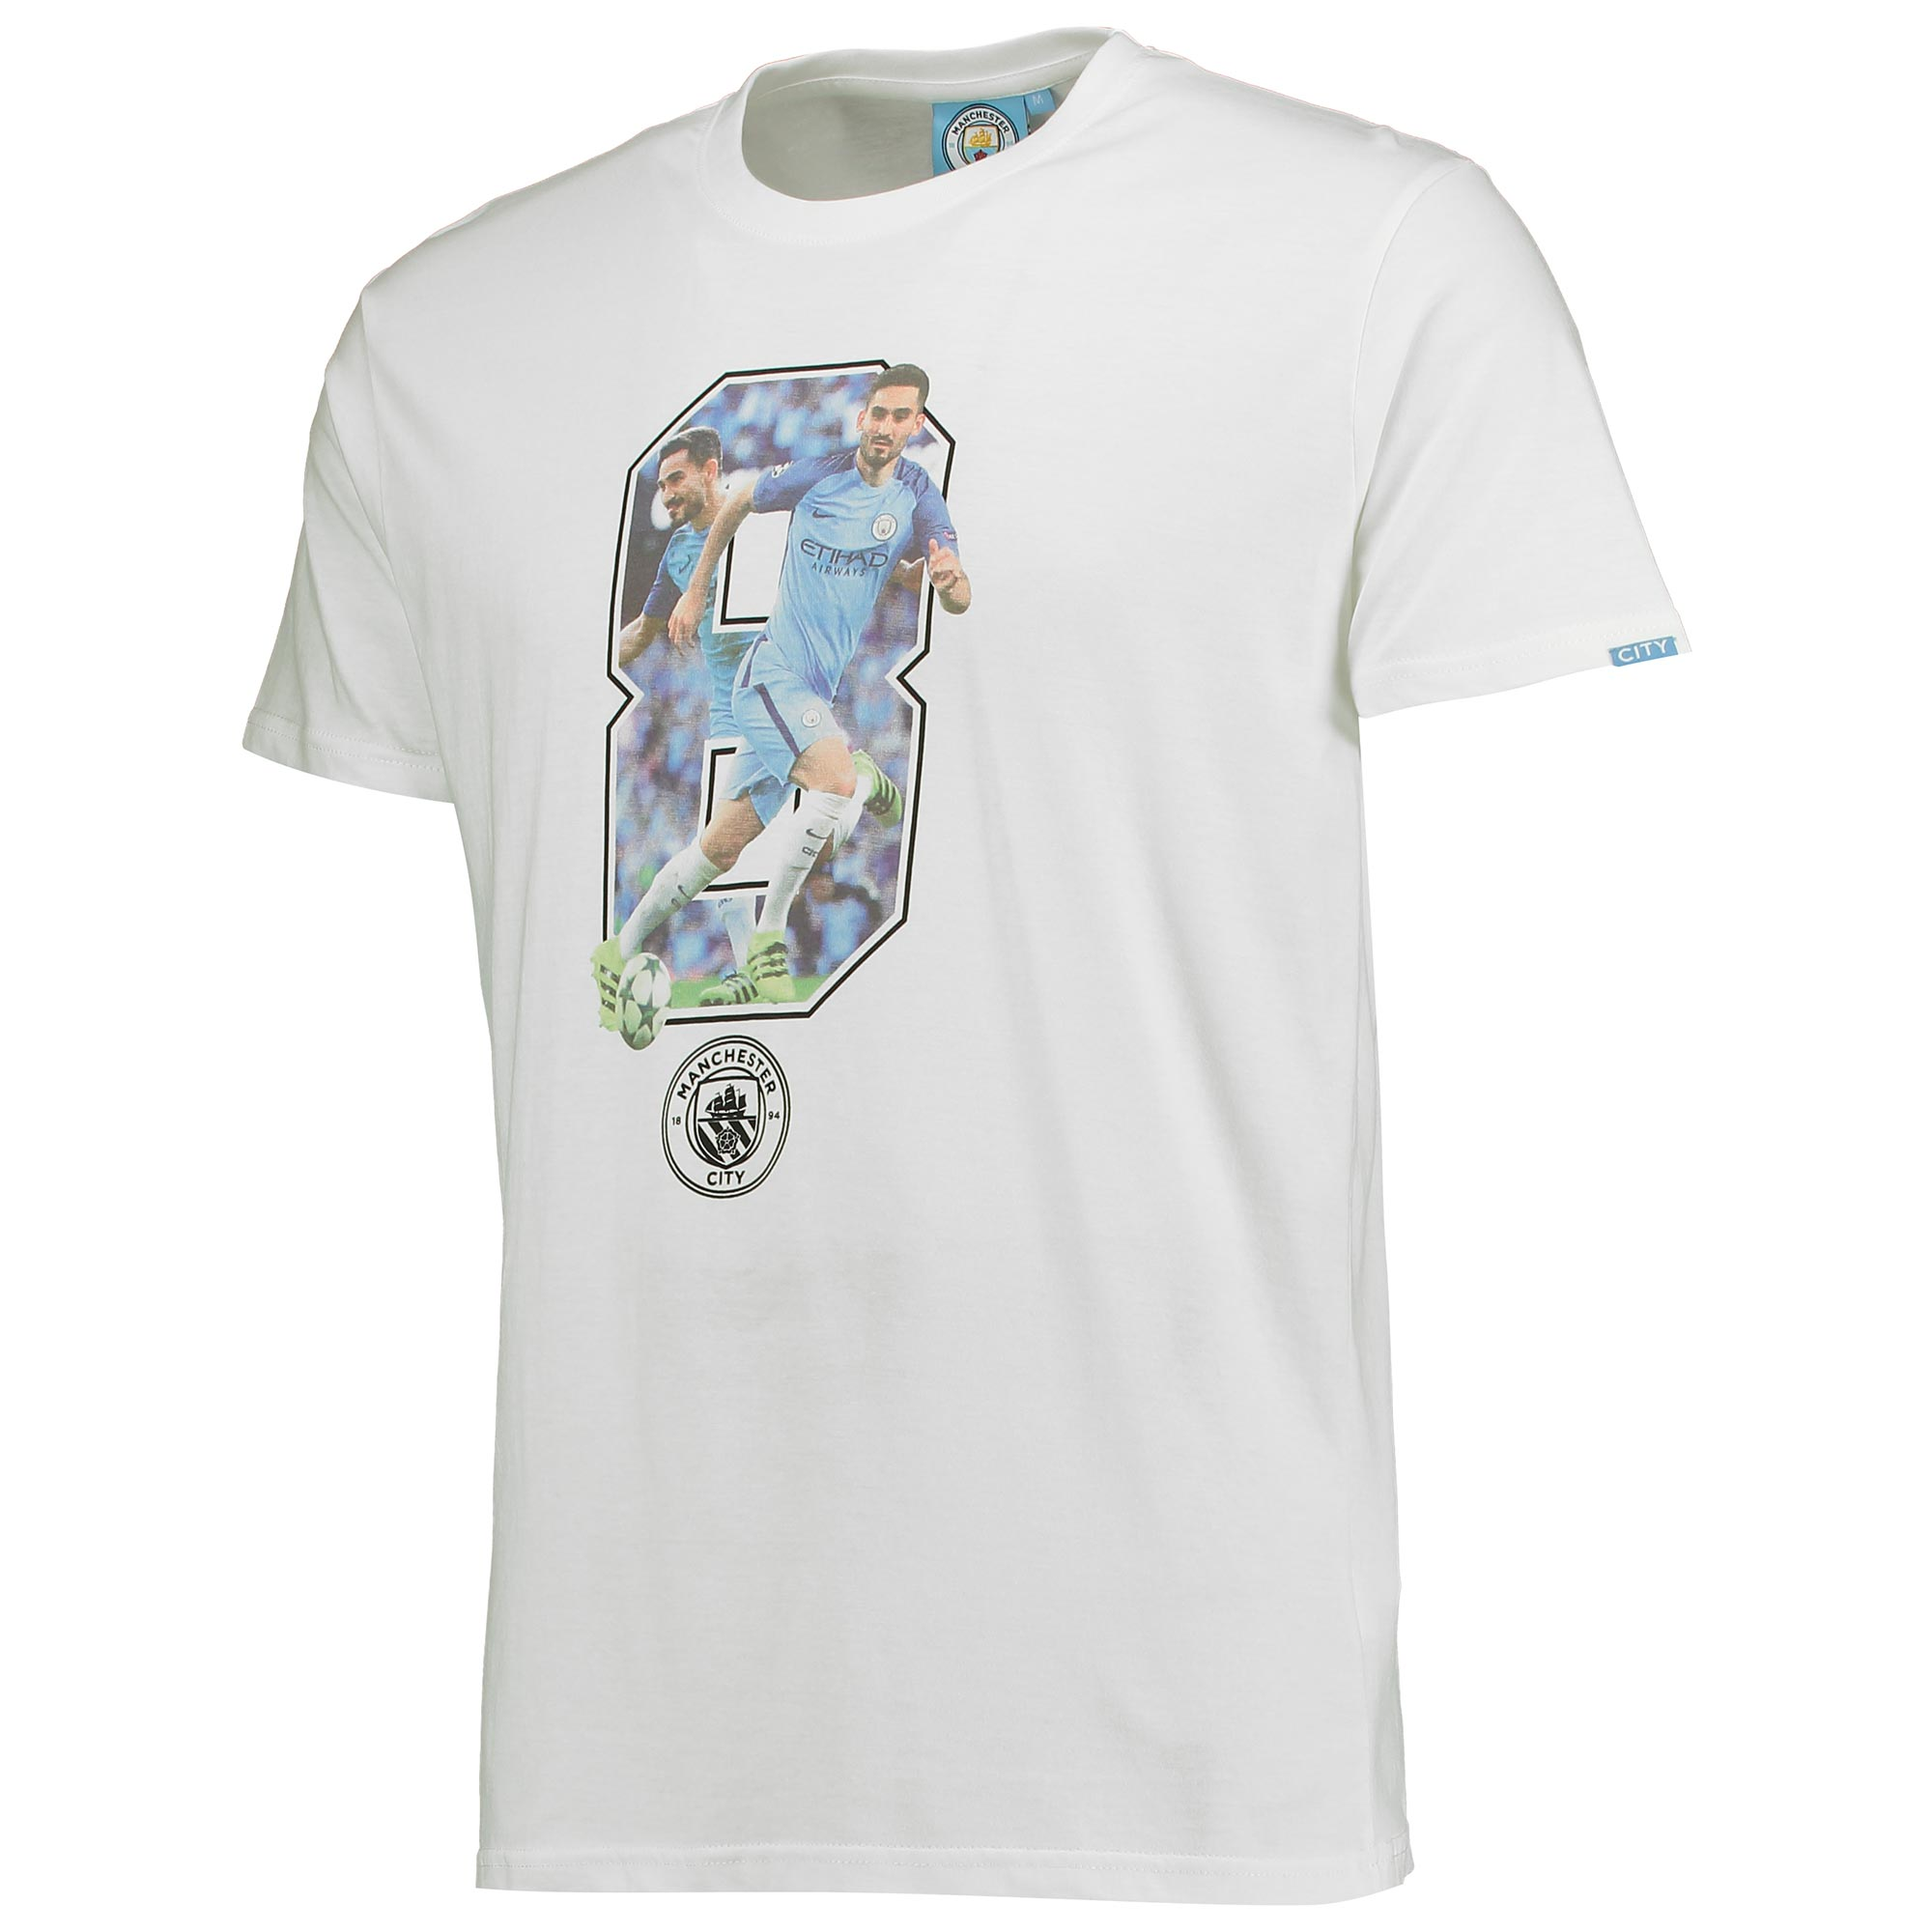 Manchester City Gundogan T-Shirt - White